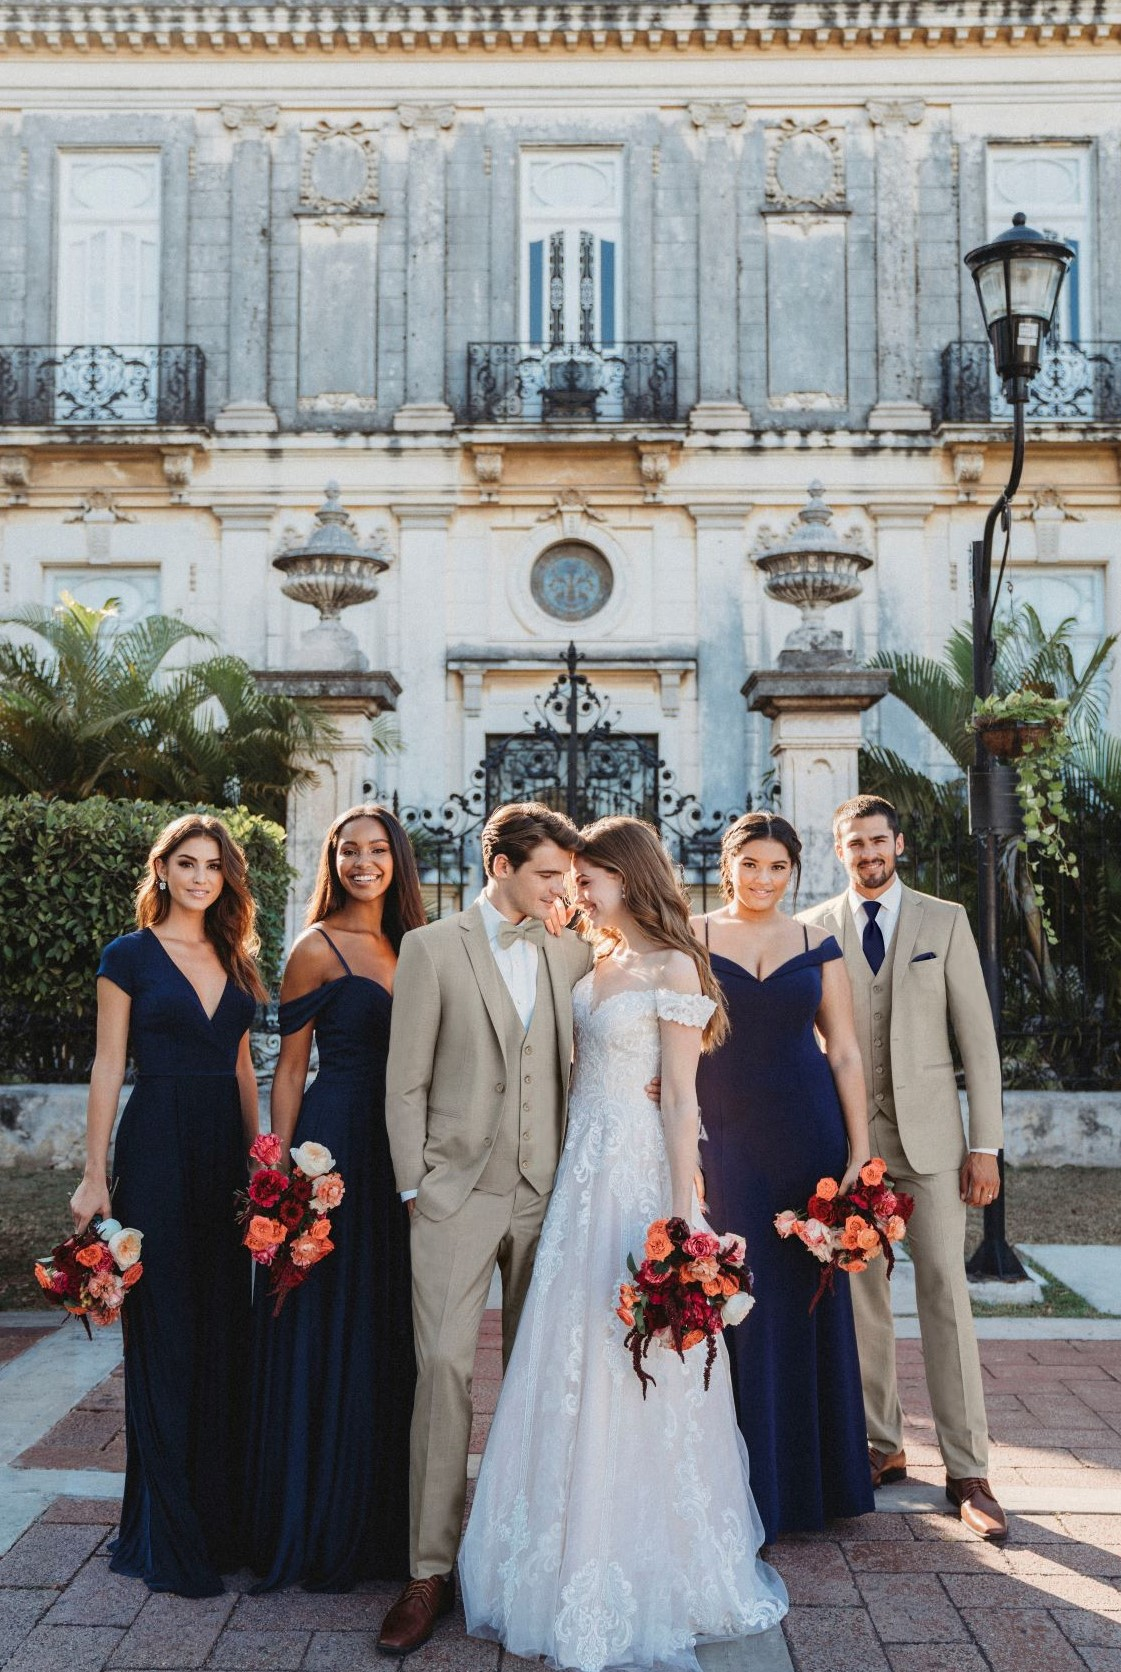 What to wear to a spring wedding - Men in tan suits with bridesmaids and bride